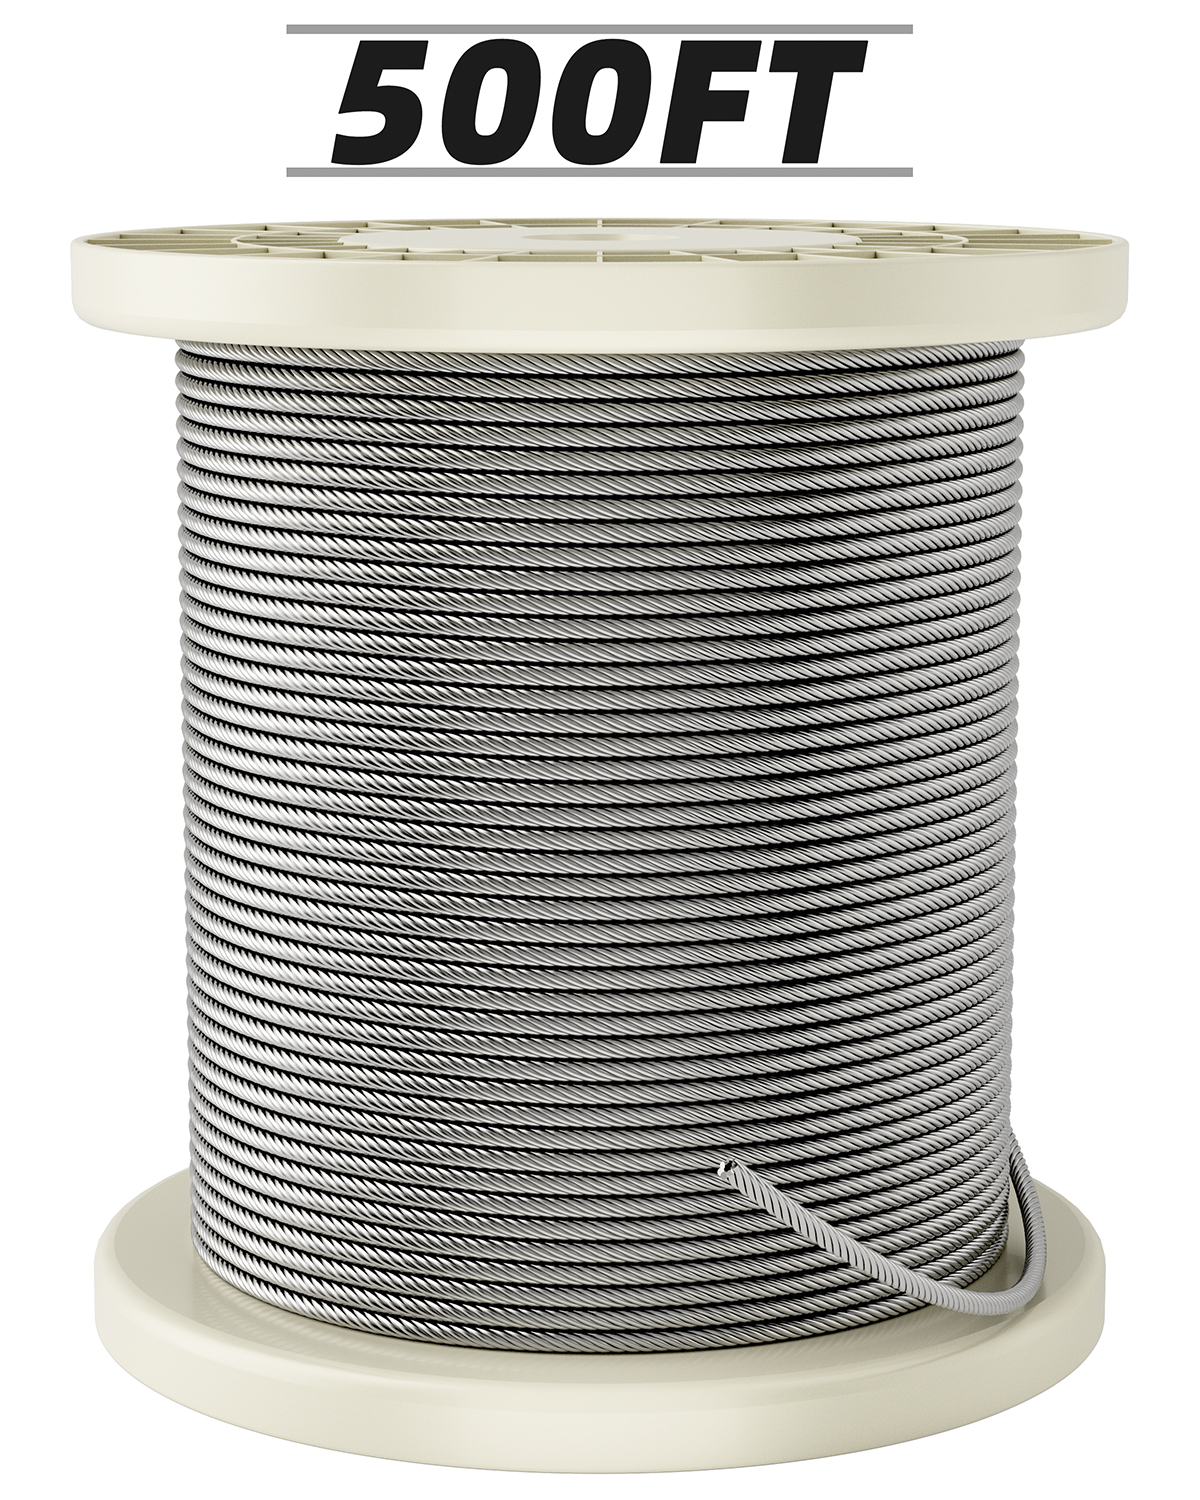 Fil-fresh 500FT 1/8 Stainless Steel Braided Cable, T316 Aircraft Cable for Deck Railing, 7 x 7 Strands Construction